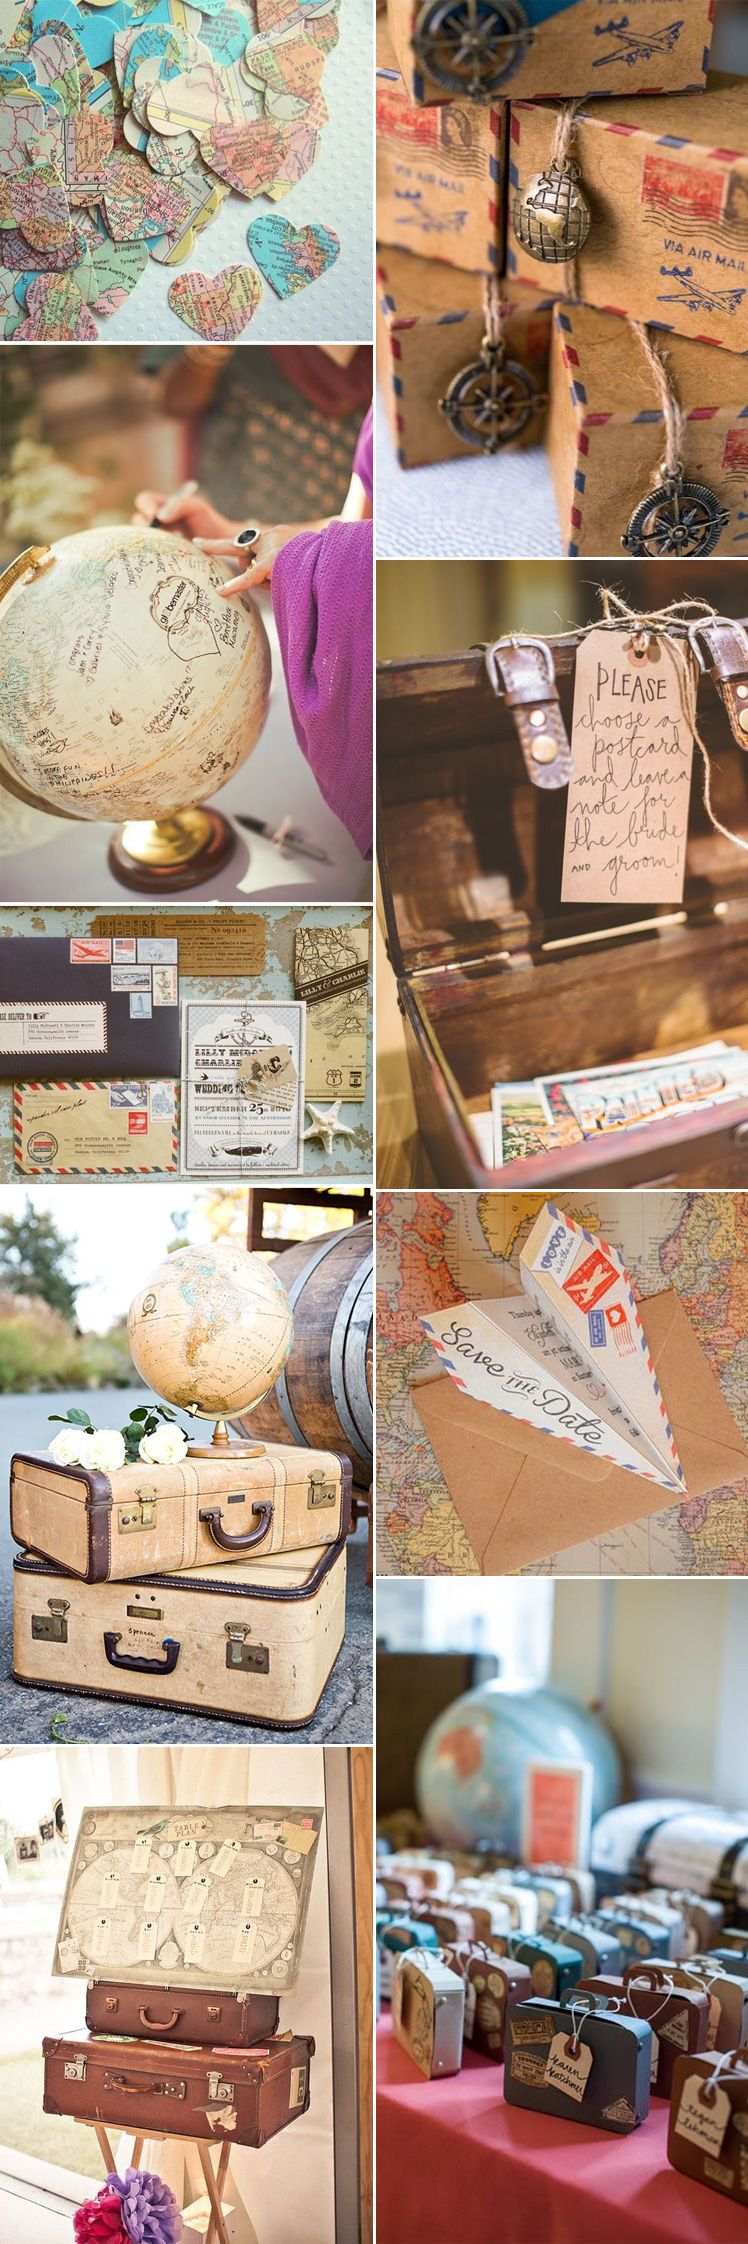 It's time to book your ticket to a vintage travel themed wedding.These  fabulous ideas